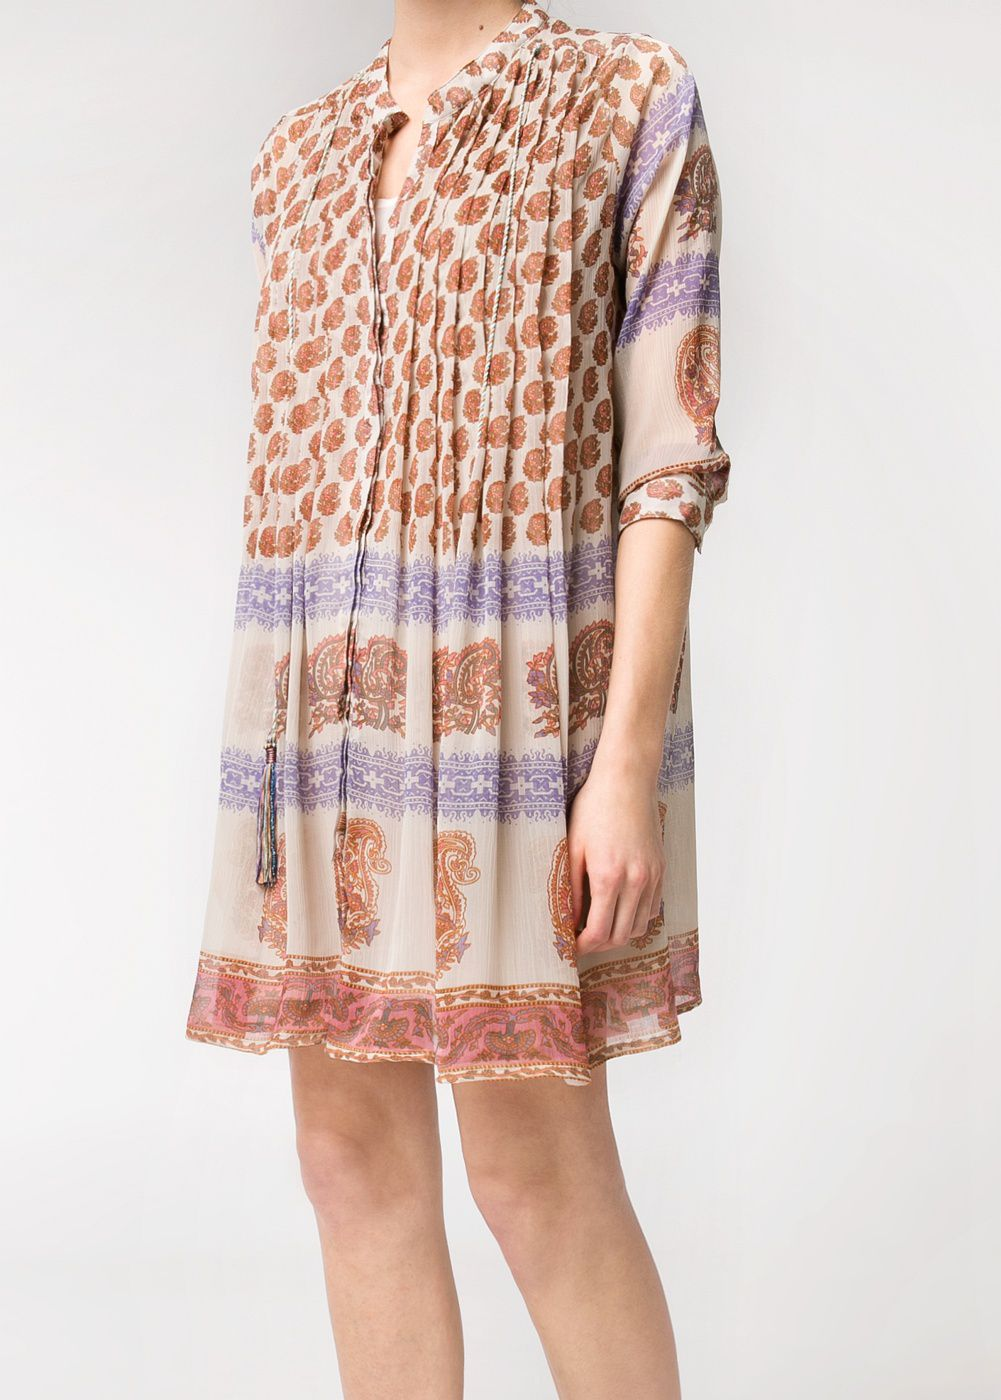 Hippie chic dress